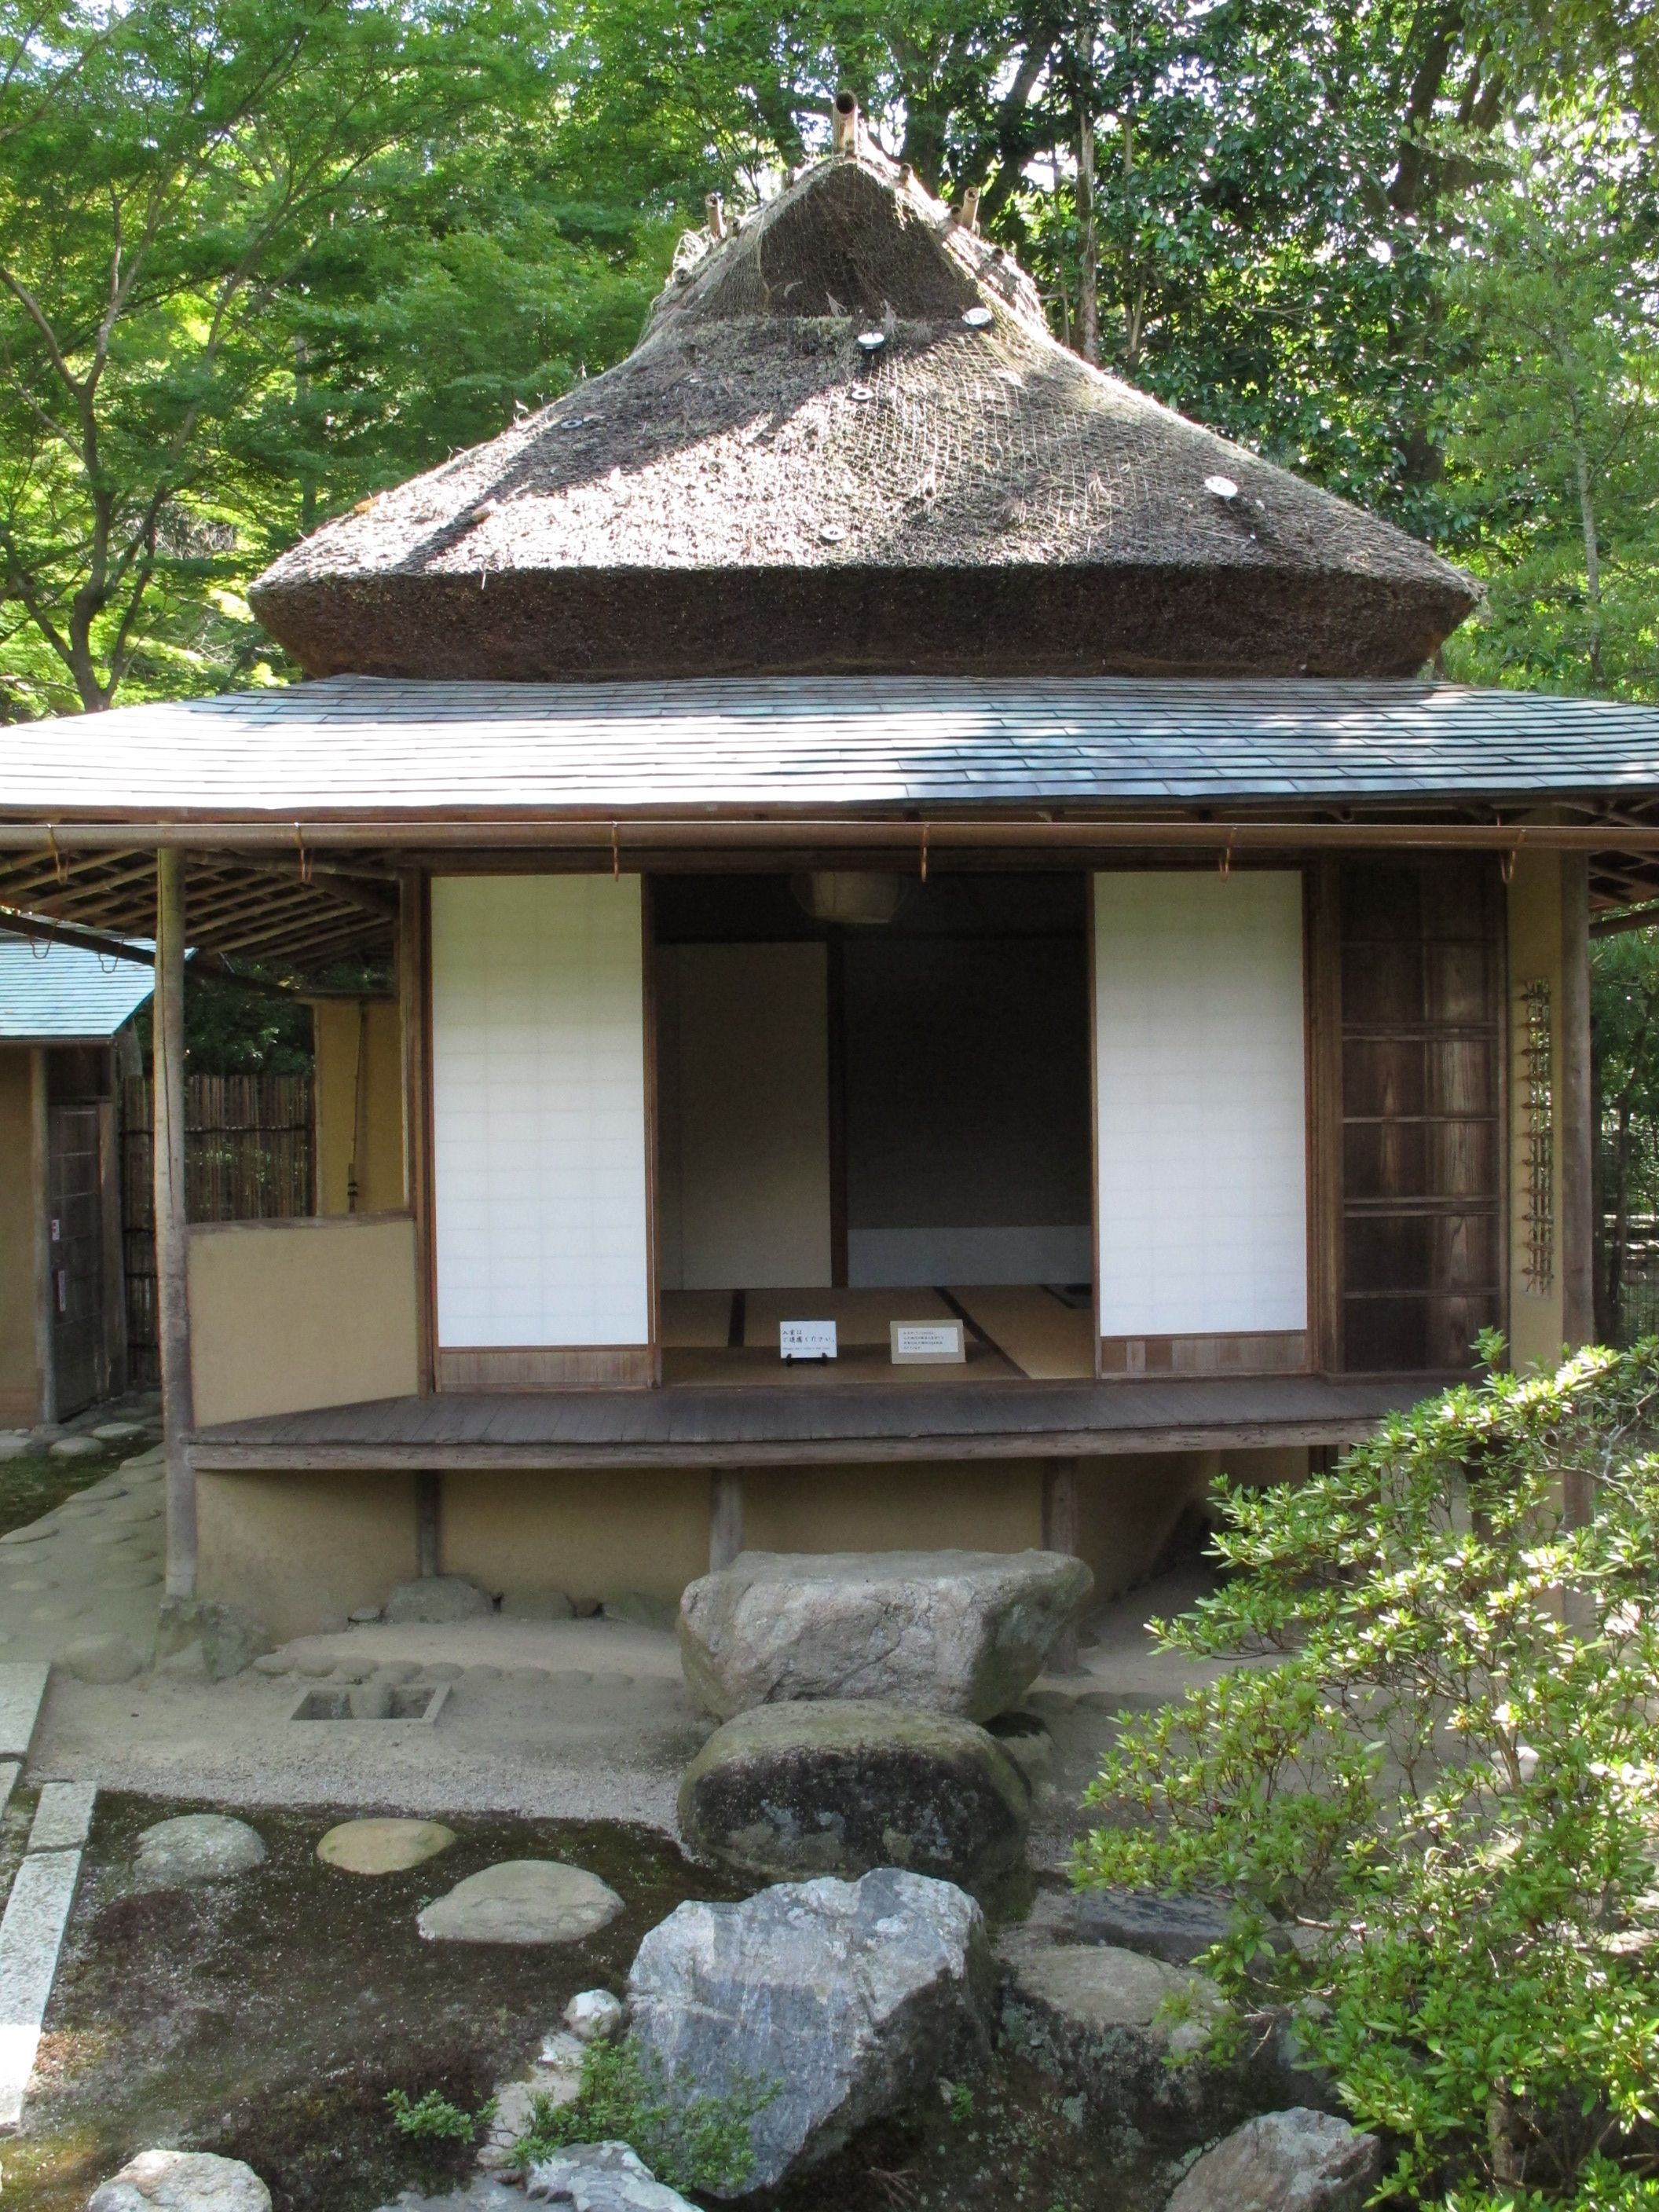 build a Japanese tea house - Google Search https://www.google.